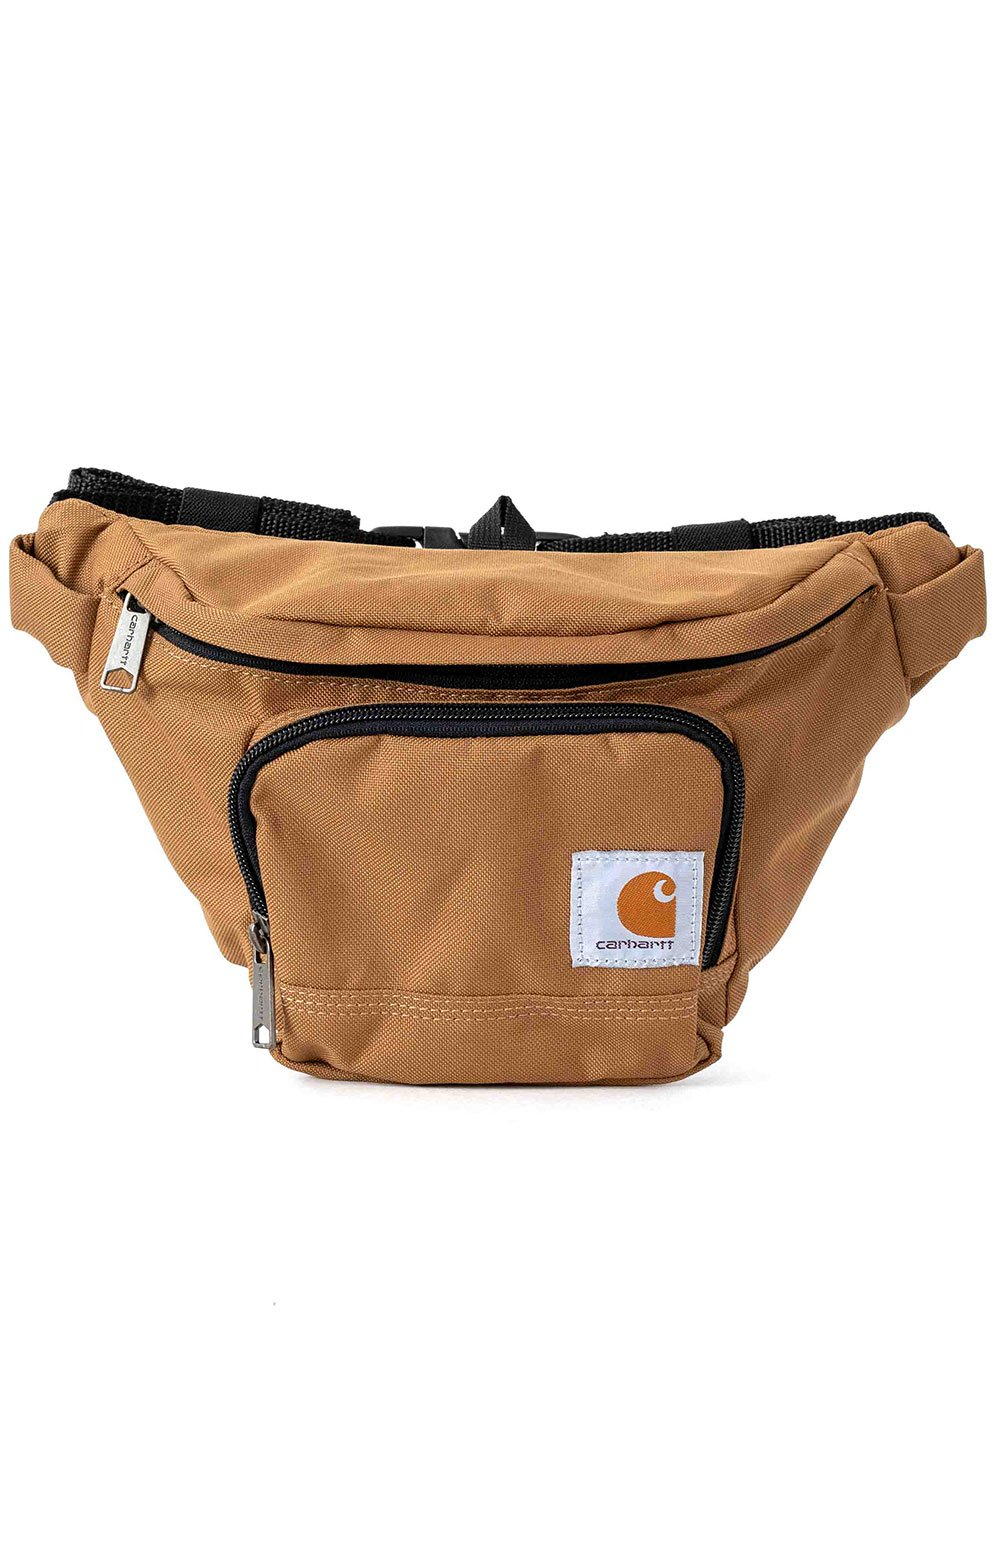 (PRE ORDER) Carhartt Waist Pack (Carhartt Brown)(NO CASH ON DELIVERY - ALL ORDERS MUST BE PAID FULL IN ADVANCE)